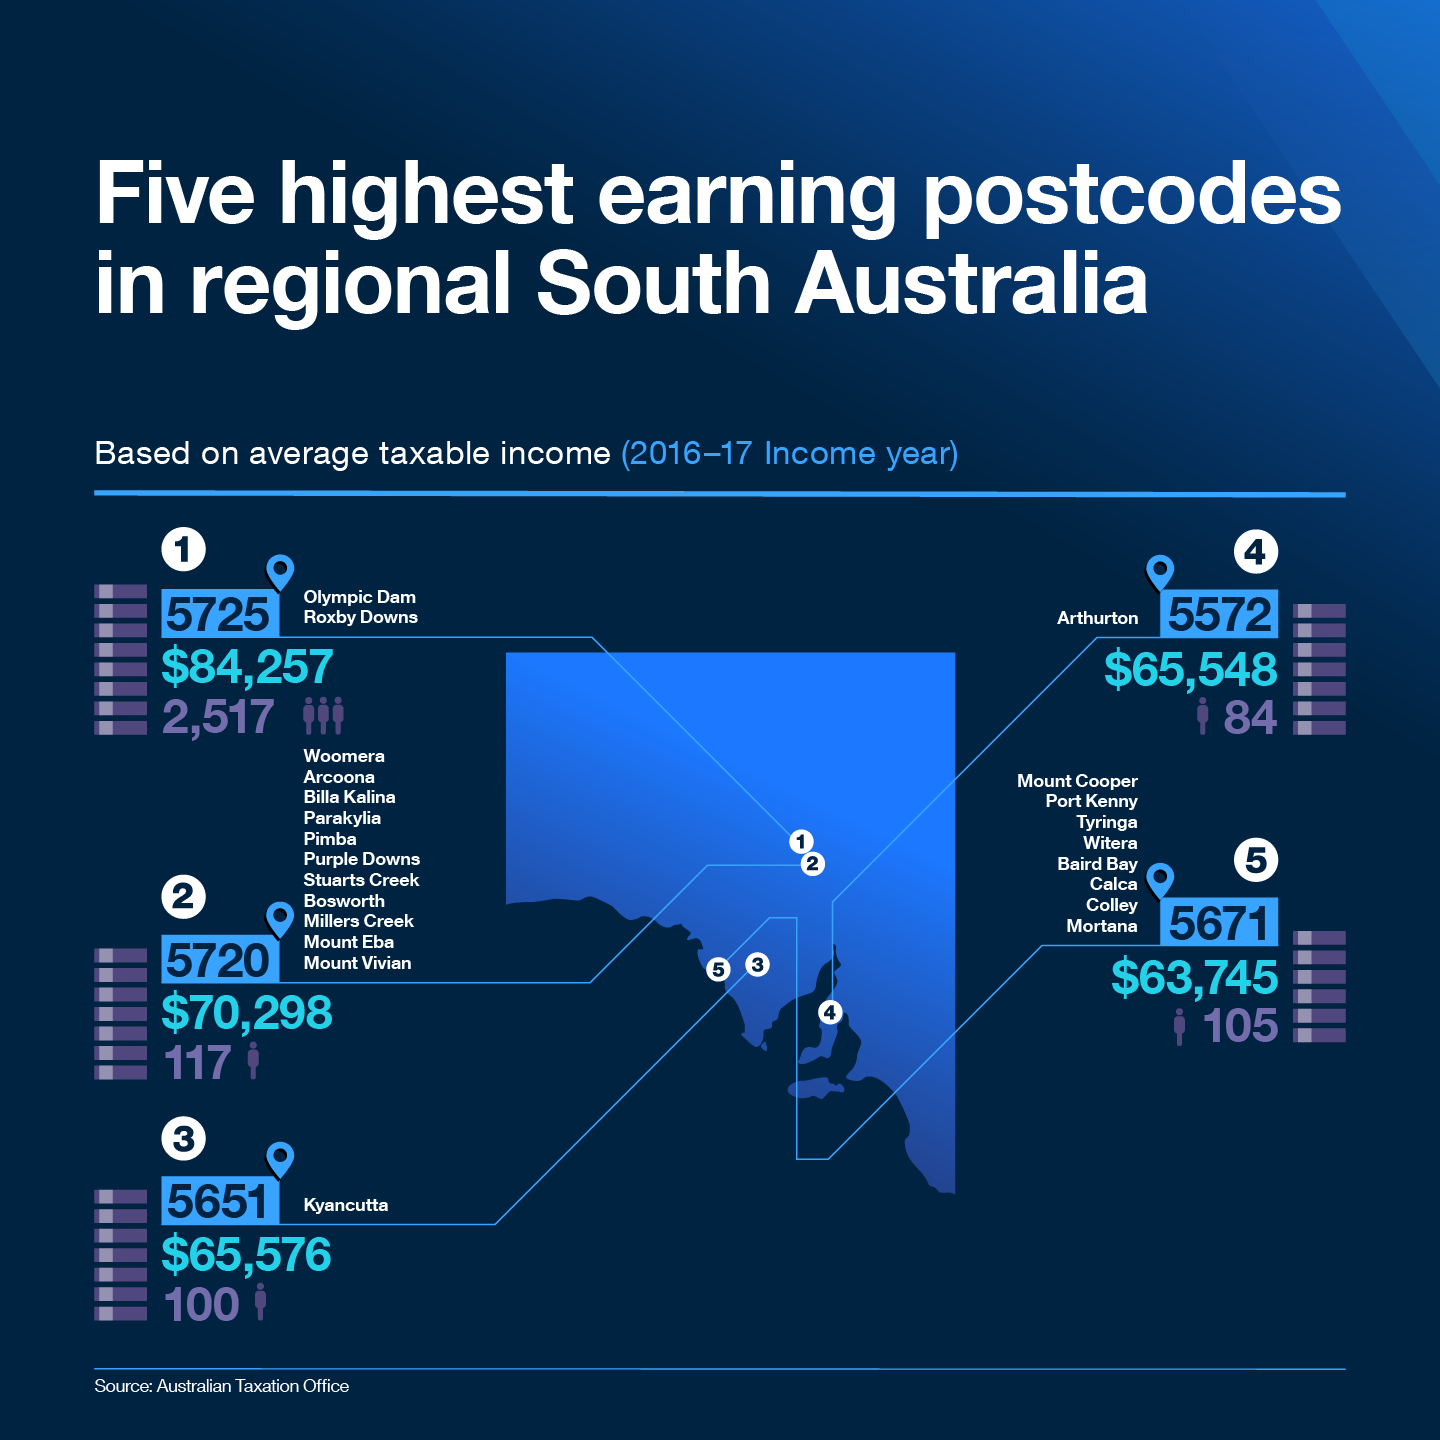 Five highest earning postcodes in regional South Australia  Based on average taxable income (2016-17 Income year)  1. The highest taxable income of $84,257 was recorded in 5725 postcode which covers Olympic Dam and Roxby Downs.  2. The second highest taxable income of $70,298 was recorded in 5720 postcode which covers Woomera, Arcoona, Billa Kalina, Parakylia, Pimba, Purple Downs, Stuarts Creek, Bosworth, Millers Creek, Mount Eba and Mount Vivian.  3. The third highest taxable income of $65,576 was recorded in 5651 postcode which covers Kyancutta.  4. The fourth highest taxable income of $65,548 was recorded in 5572 postcode which covers Arthurton.  5. The fifth highest taxable income of $63,745 was recorded in 5671 postcode which covers Mount Cooper, Port Kenny, Tyringa, Witera, Baird Bay, Calca, Colley and Mortana.